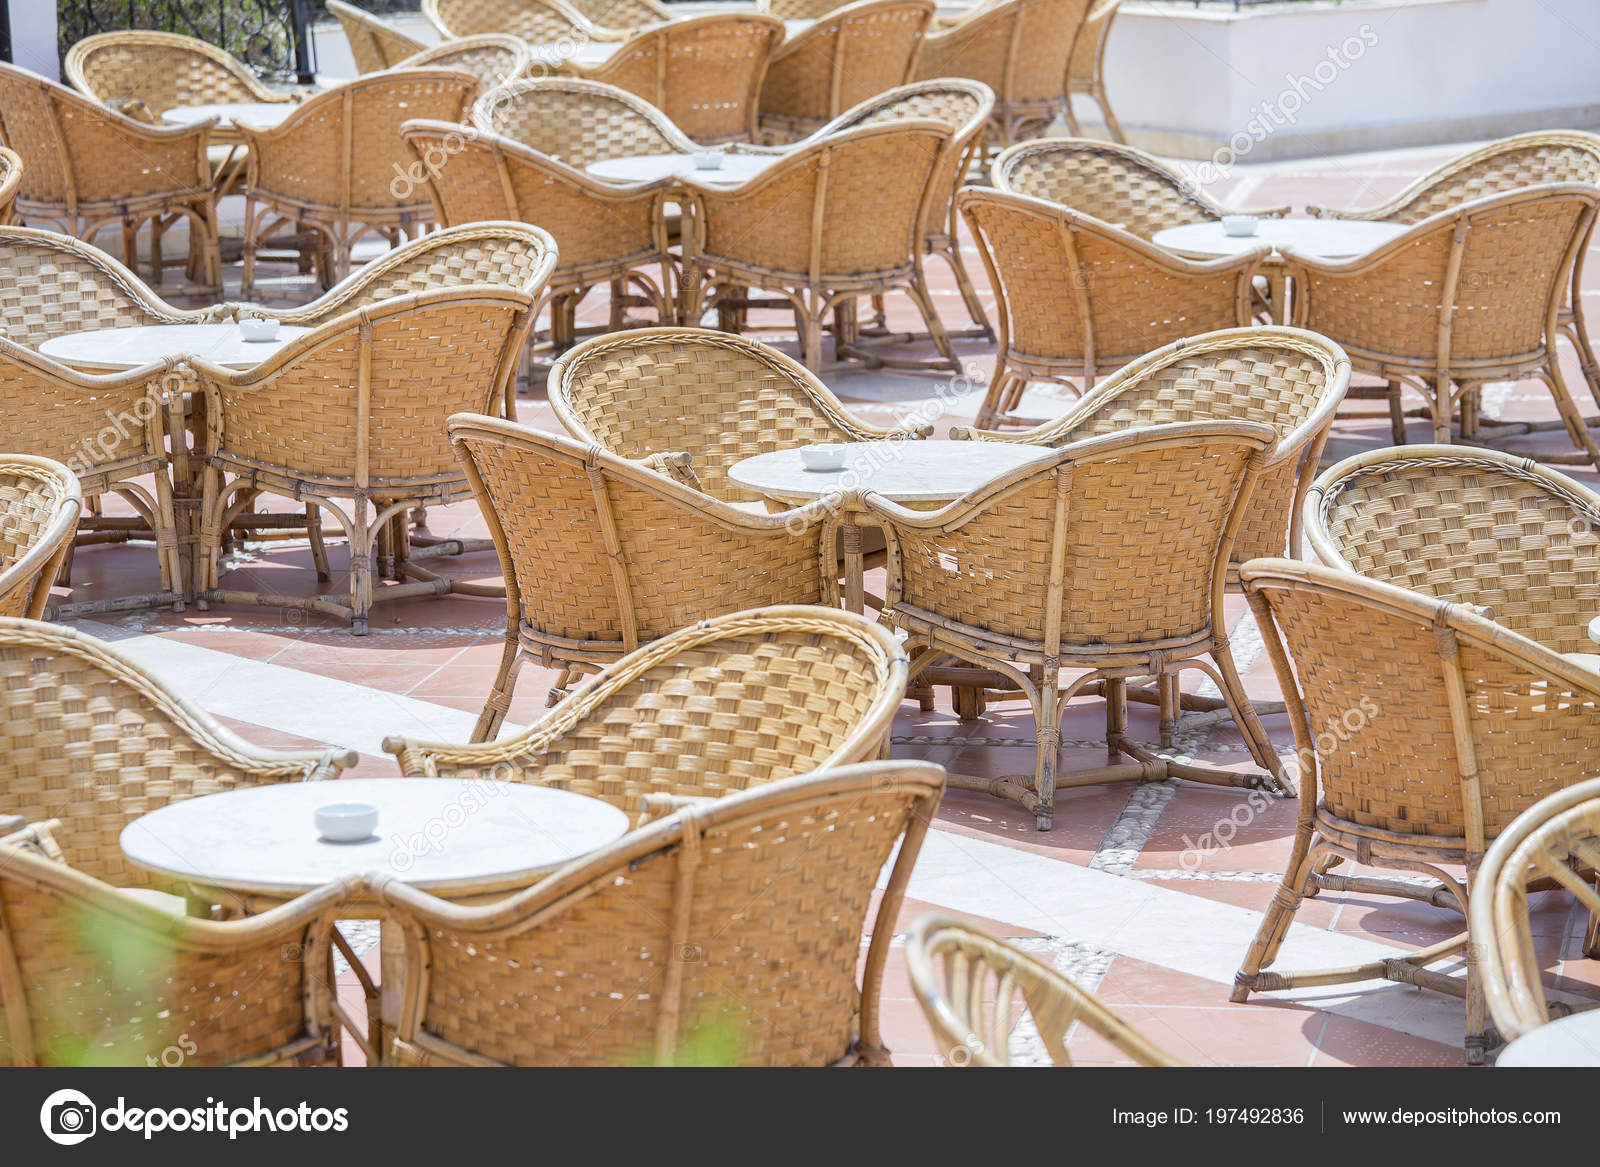 Table Rotin Chaises Dans Cafe Plage Cote Mer Rouge Charm Photo